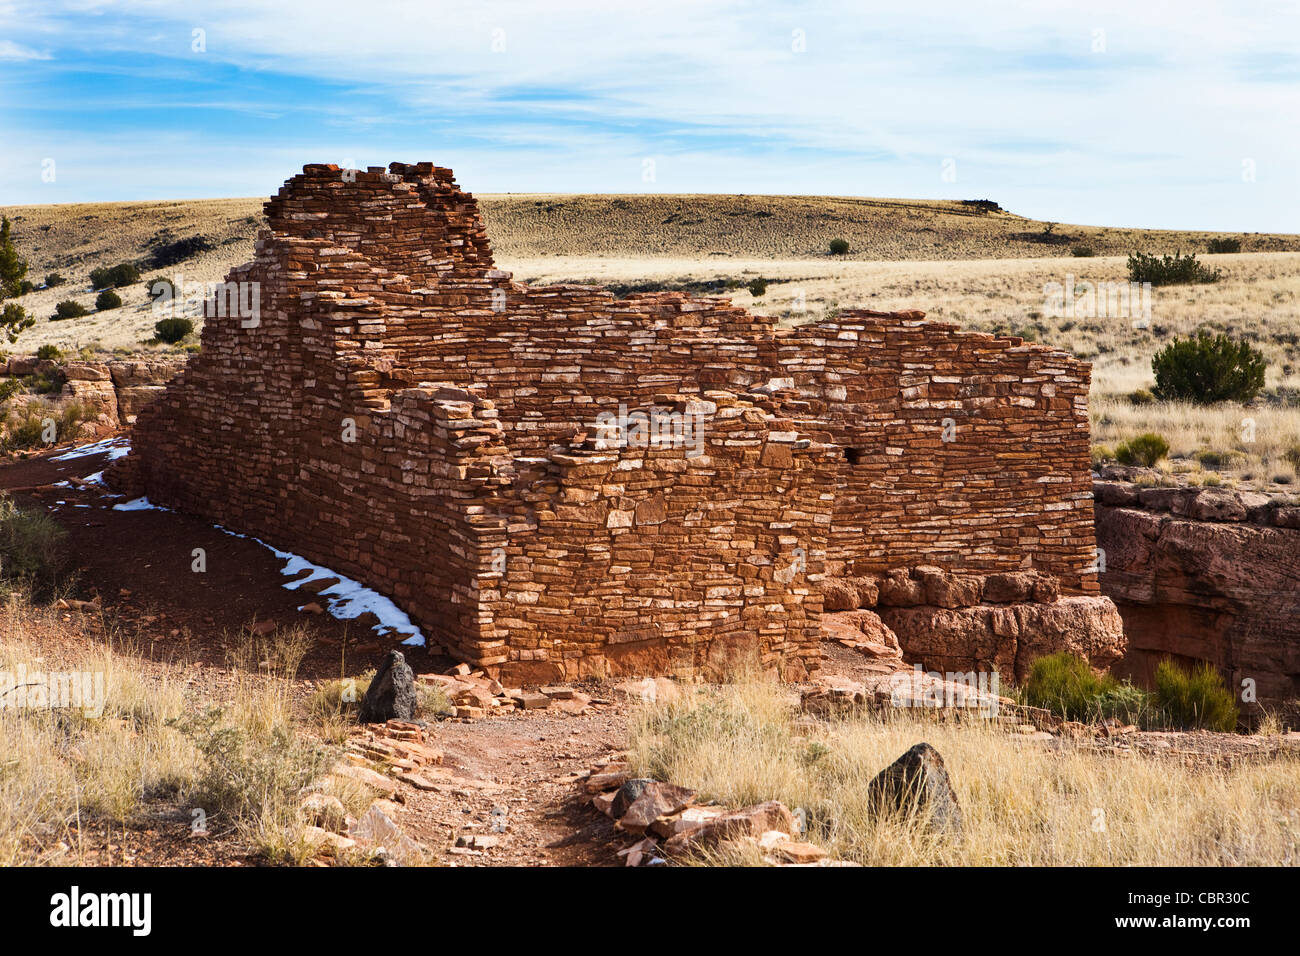 Lomaki Pueblo, Hopi Ruins, Wupaktki National Monument, Arizona - Stock Image